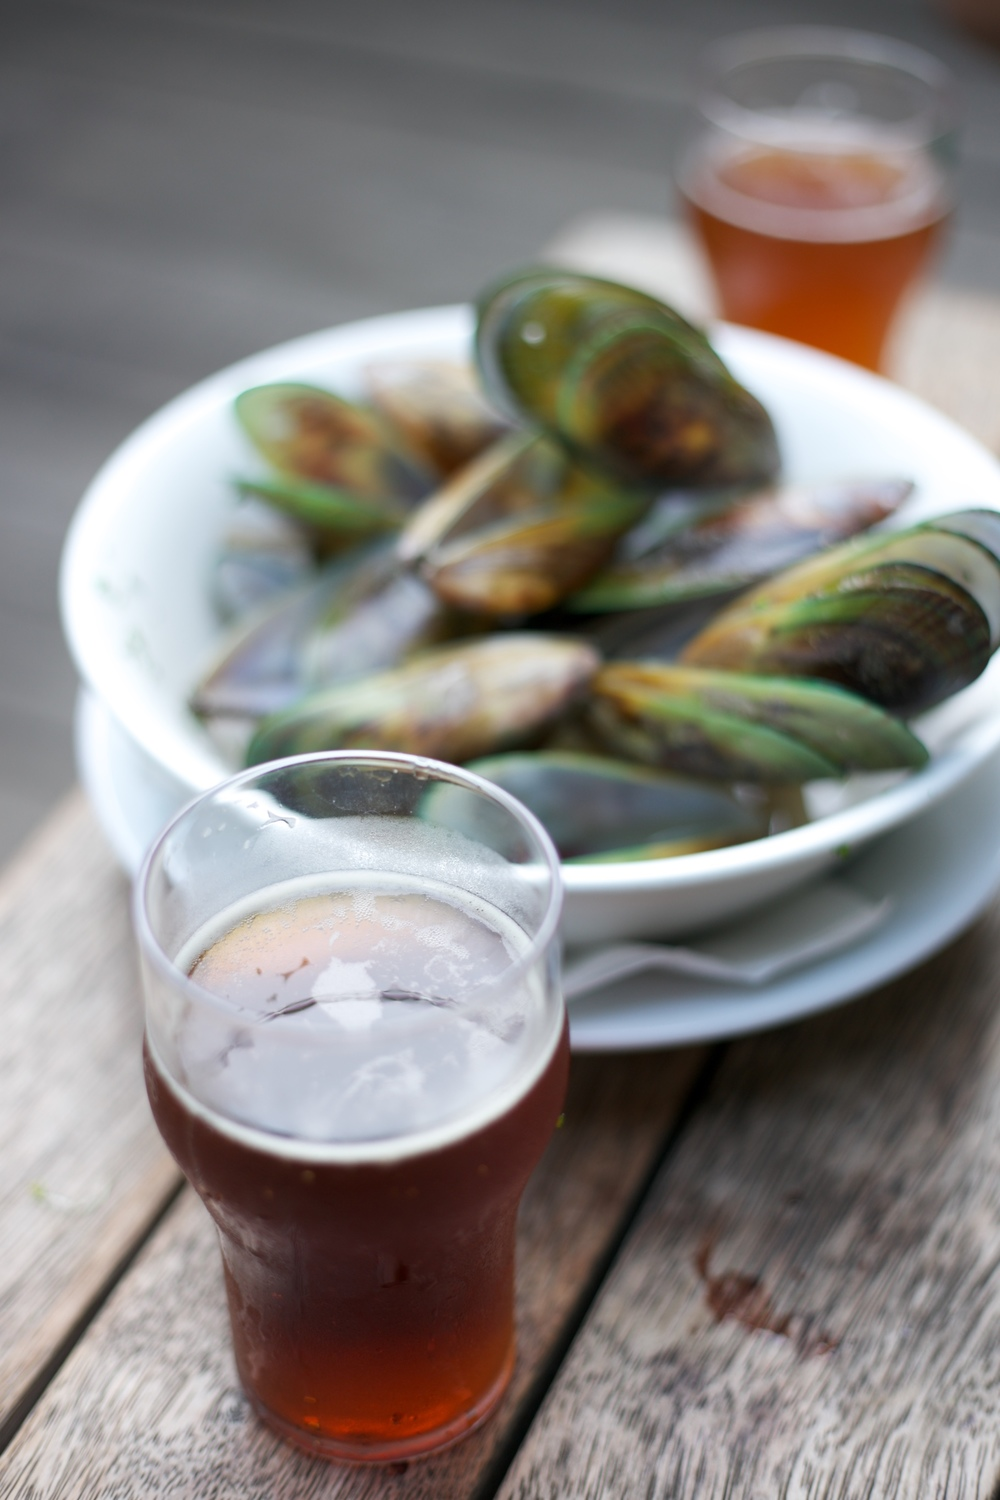 Beer and mussels at the Mussel Inn, Onekaka, NZ.